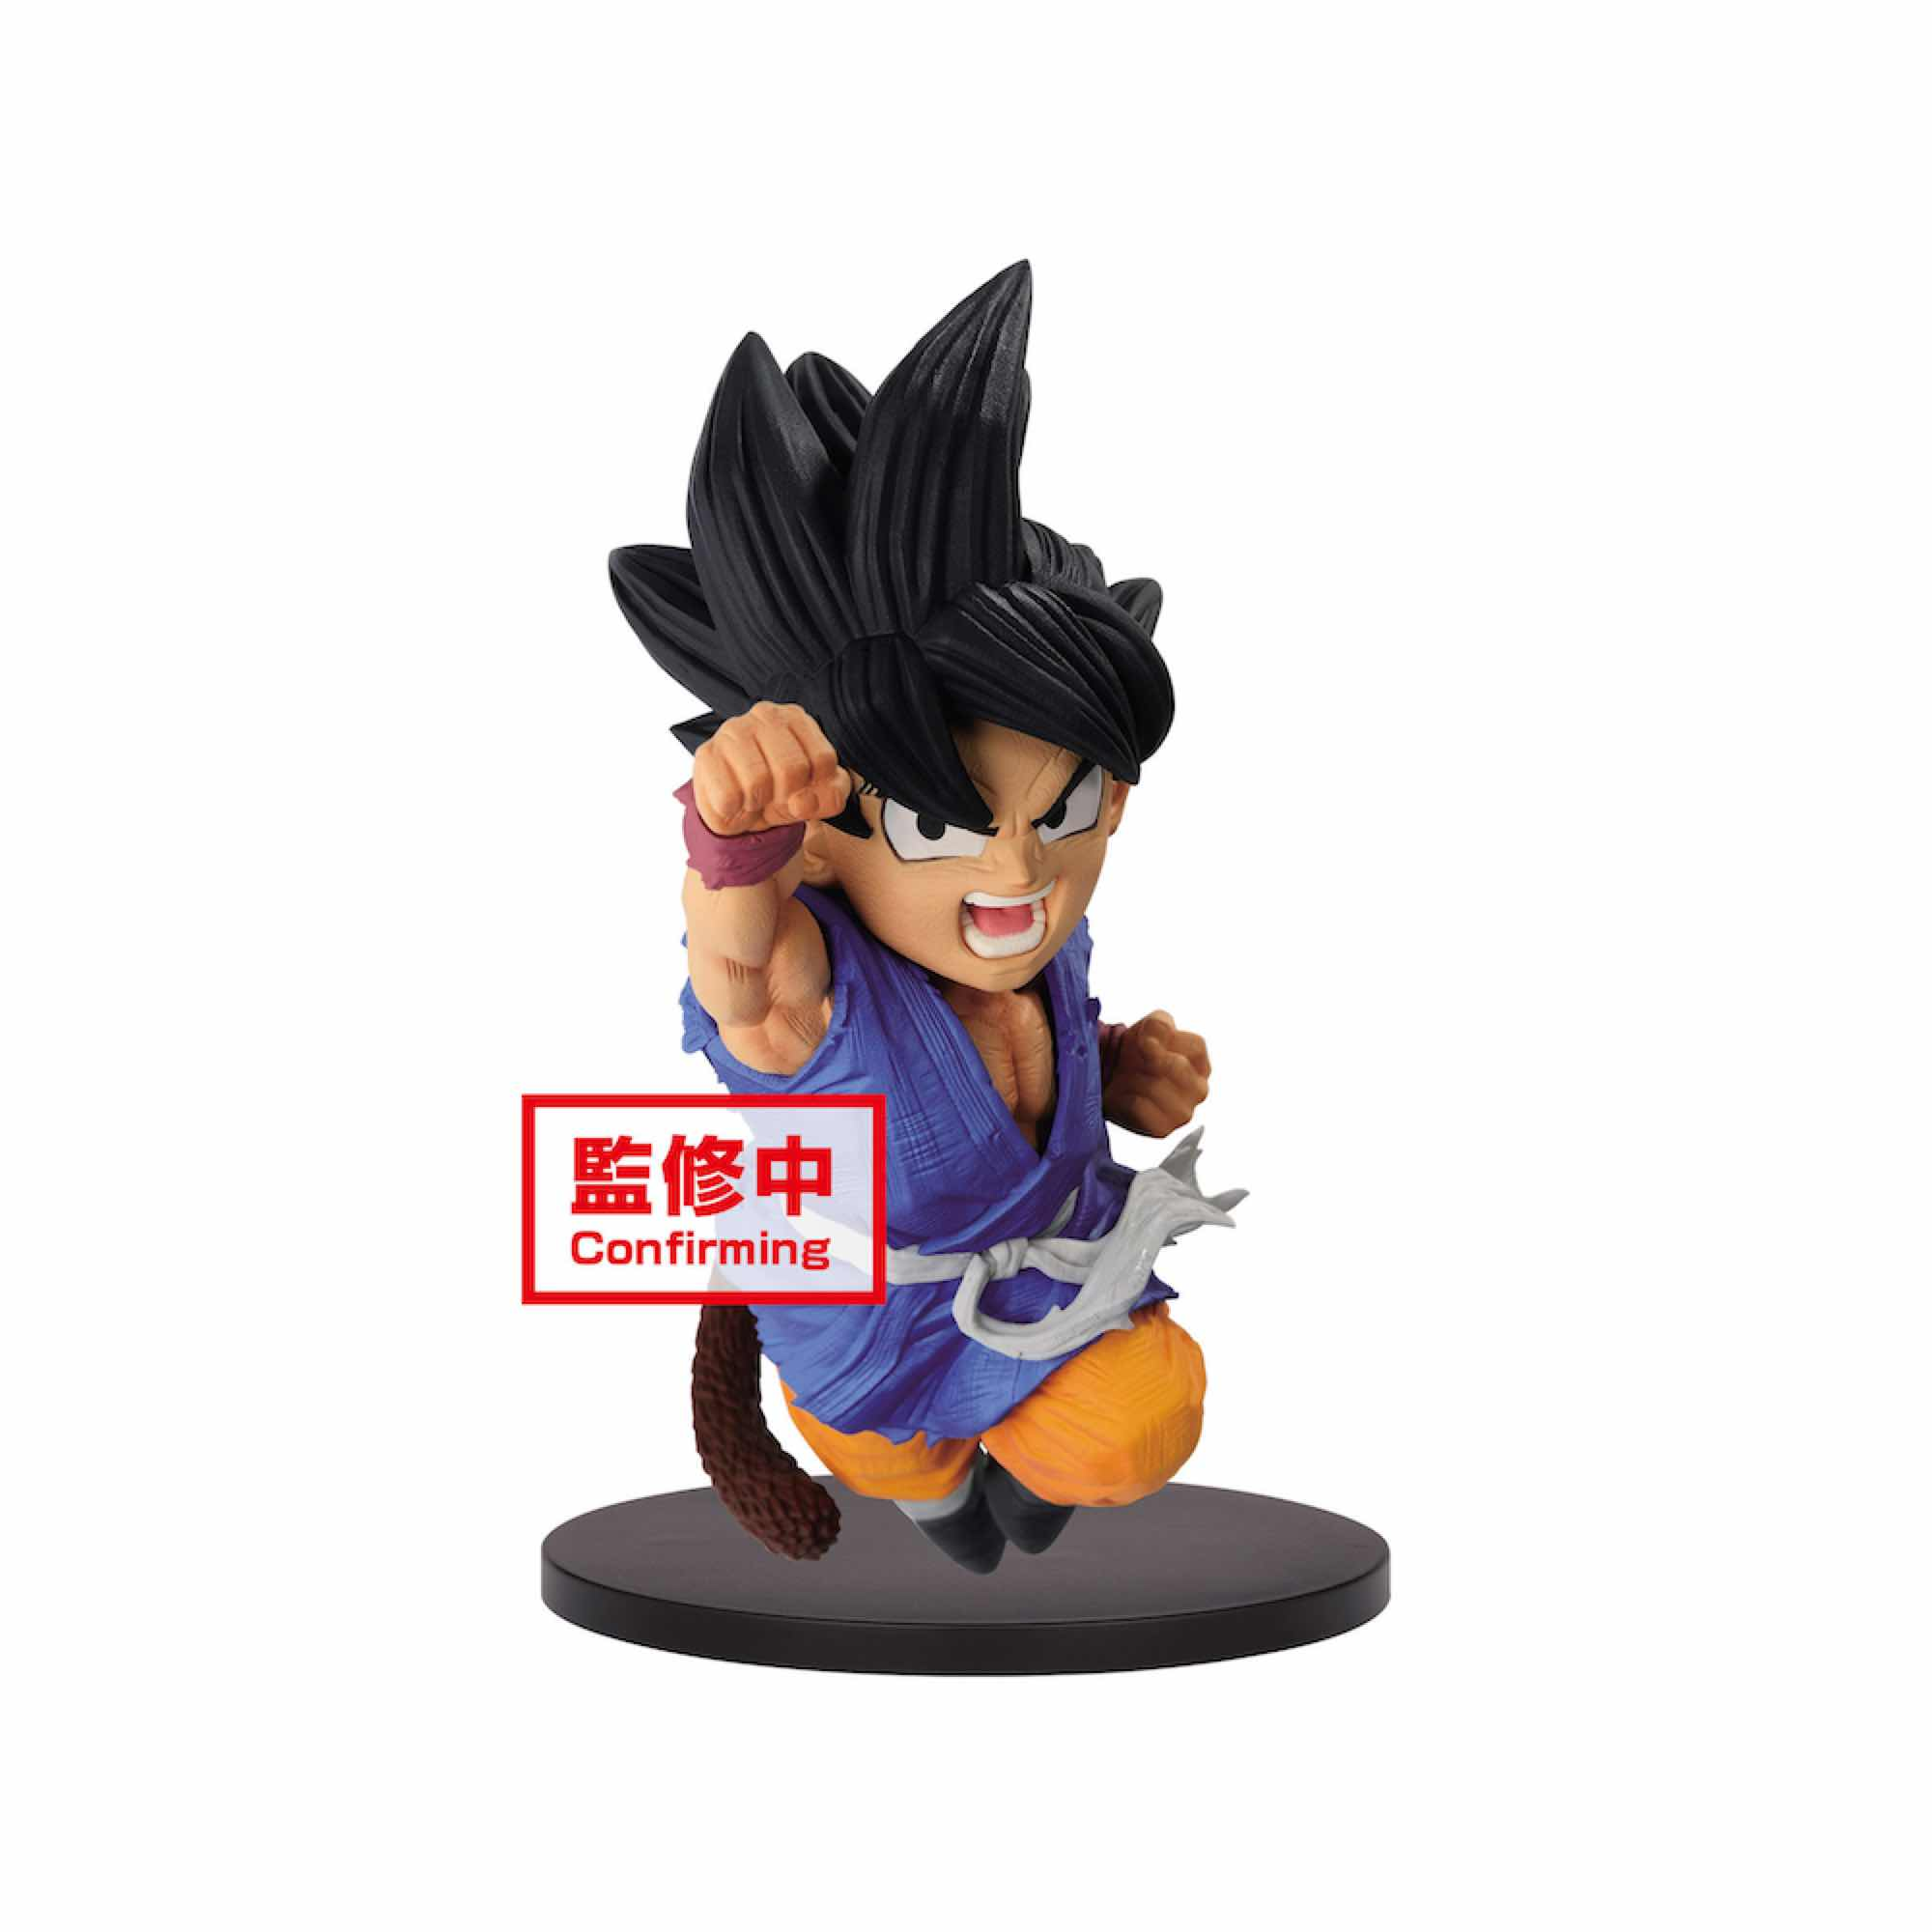 SON GOKU FIGURA 13 CM DRAGON BALL GT WRATH OF THE DRAGON POSING FIGURE SERIES